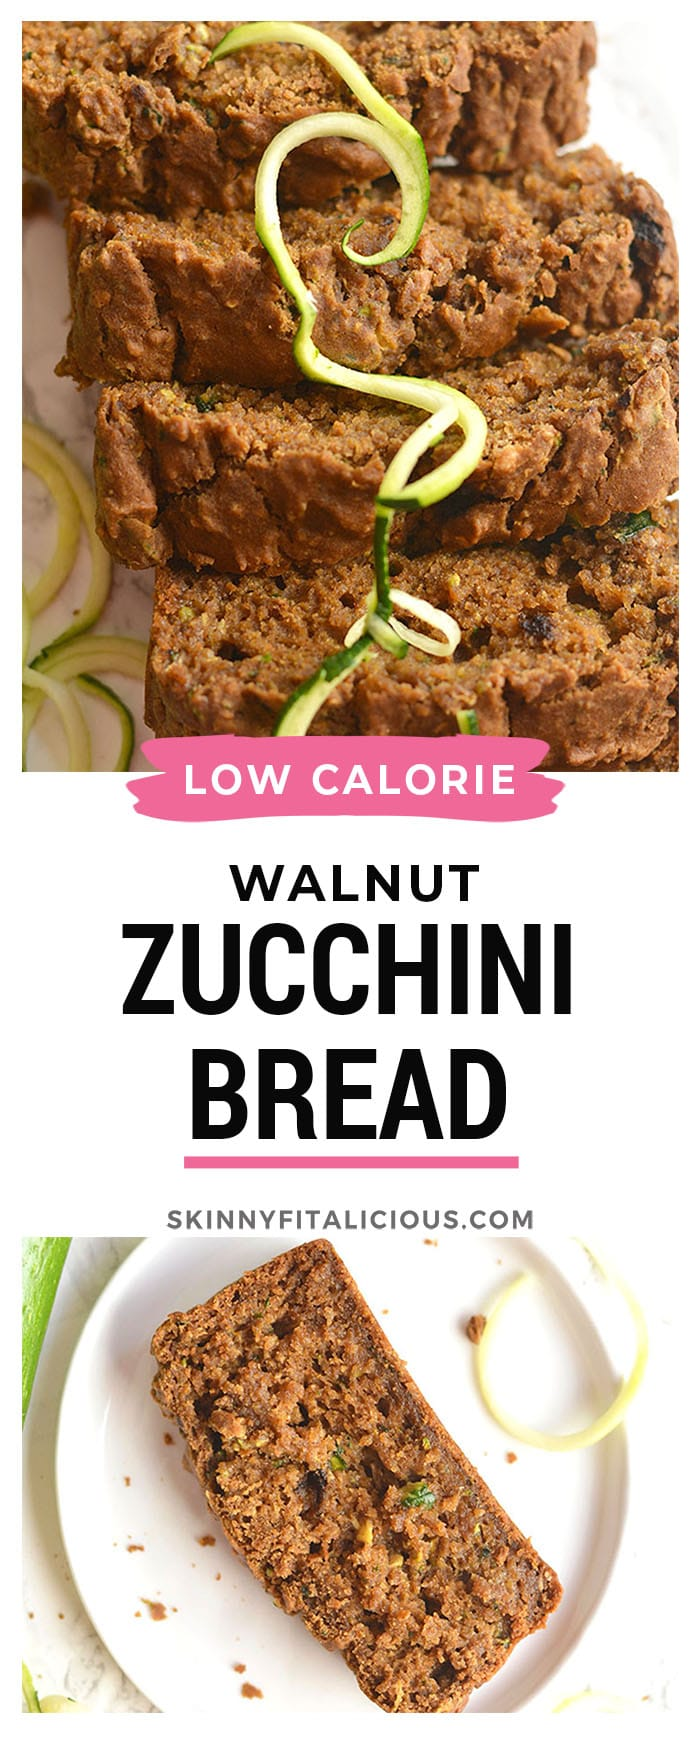 Zucchini Walnut Espresso Bread made healthy and spiked with espresso for a velvety texture you can't resist. Perfect for breakfast or an anytime snack. Gluten Free + Low Calorie